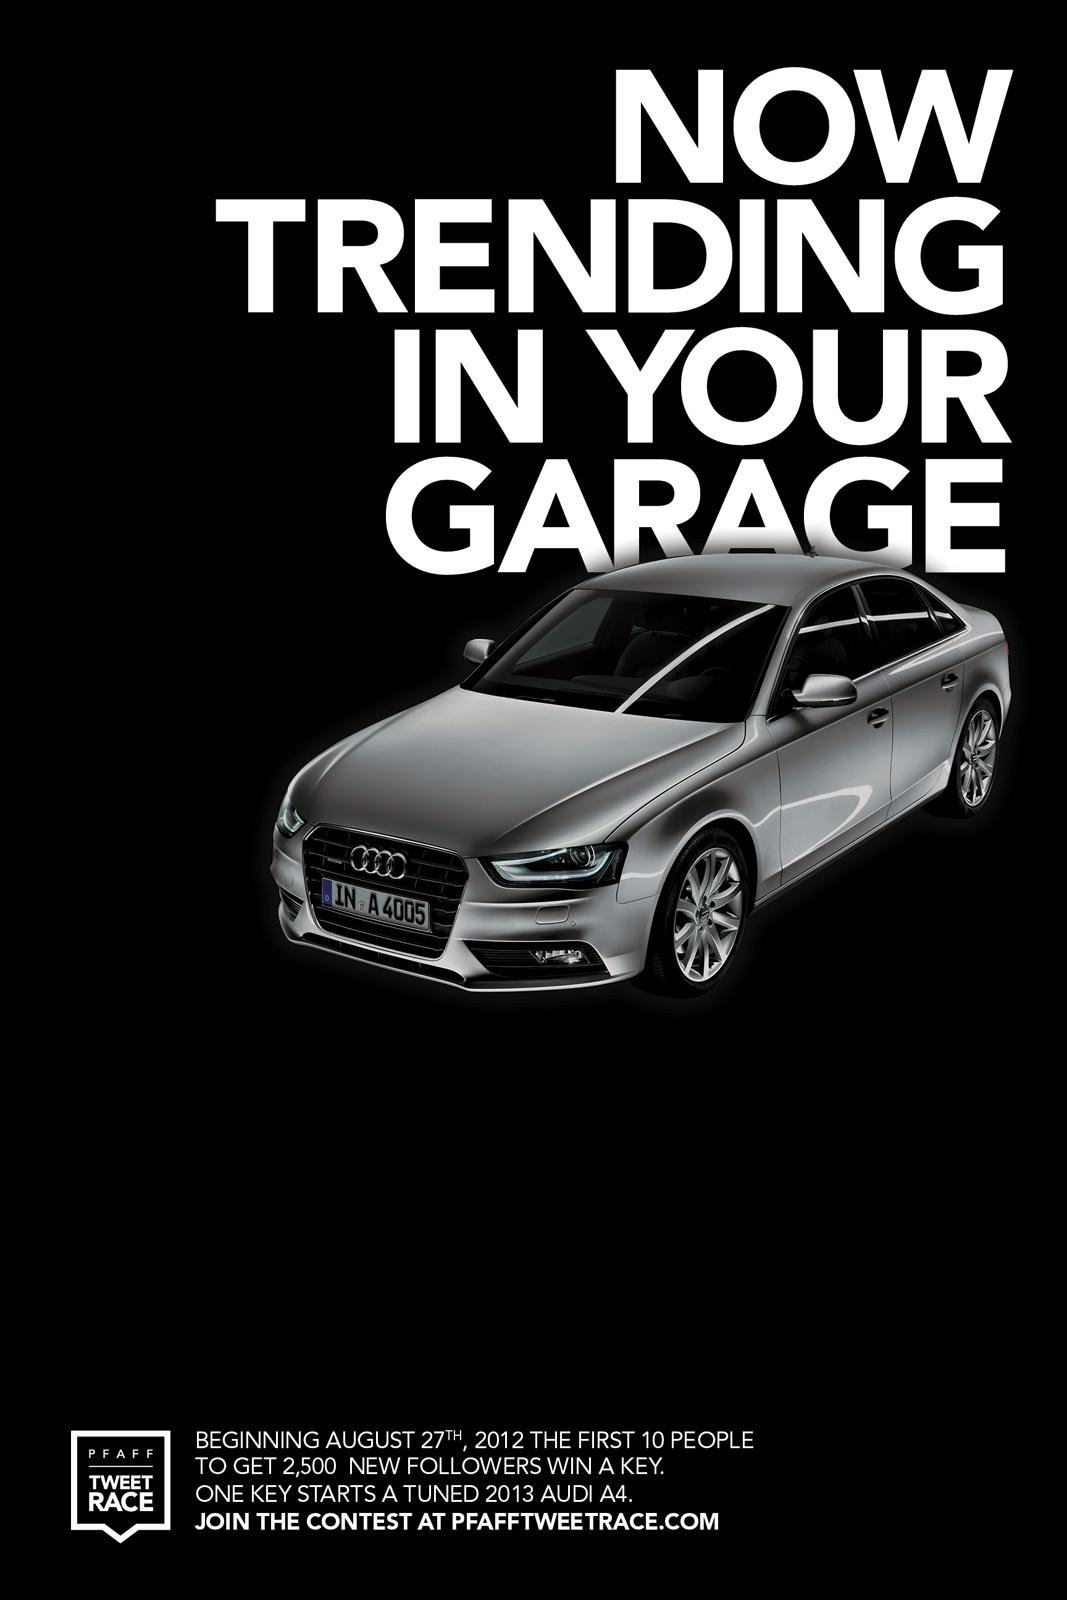 Audi Outdoor Ad -  Now trending in your garage